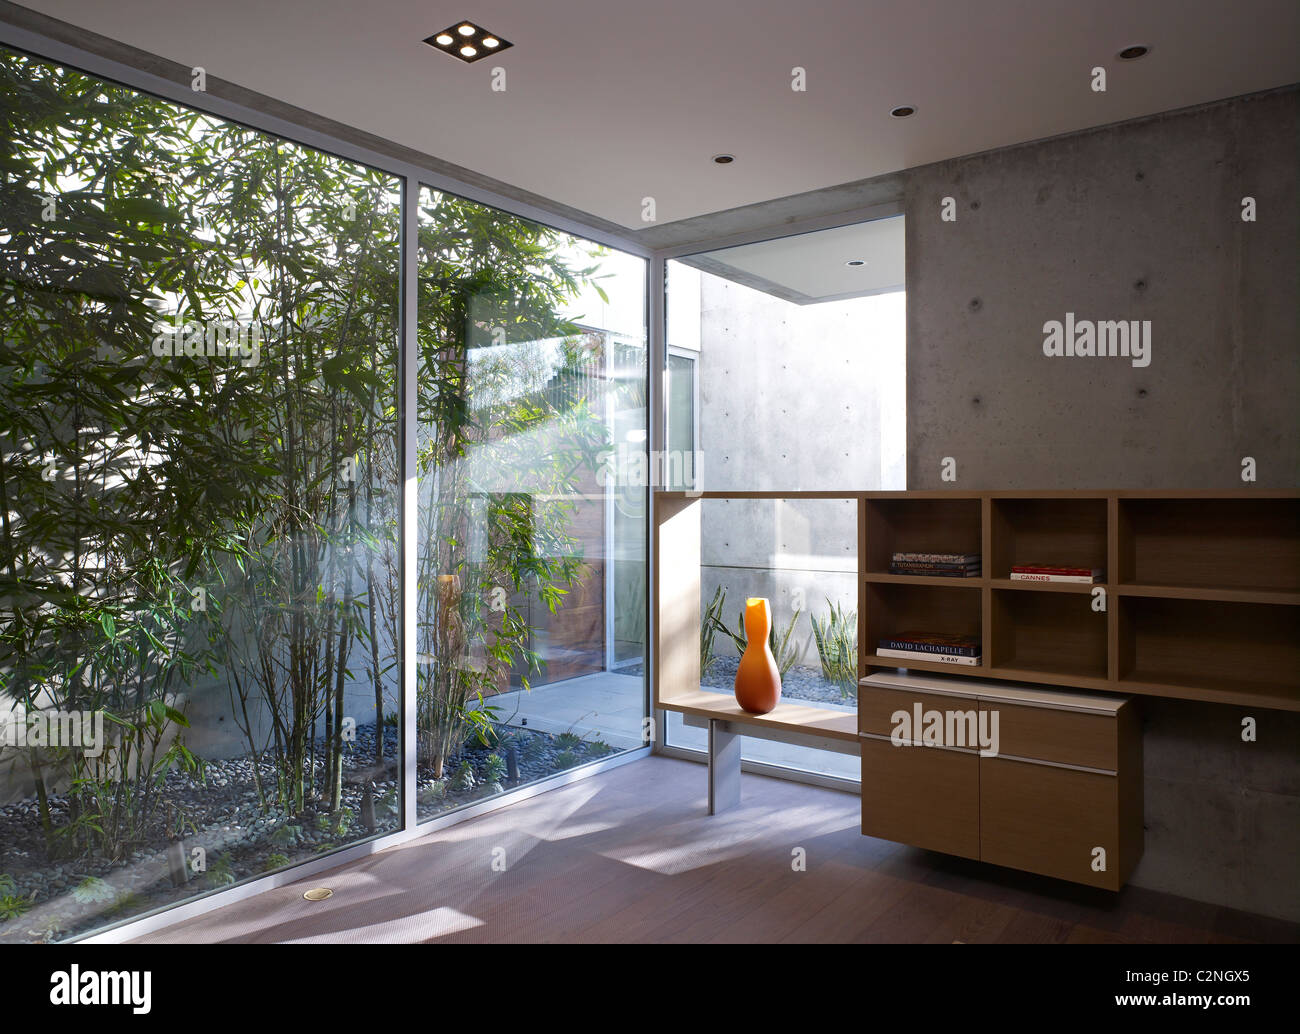 Modern detached house, West Hollywood, California. Interior corner detail with full-height windows - Stock Image